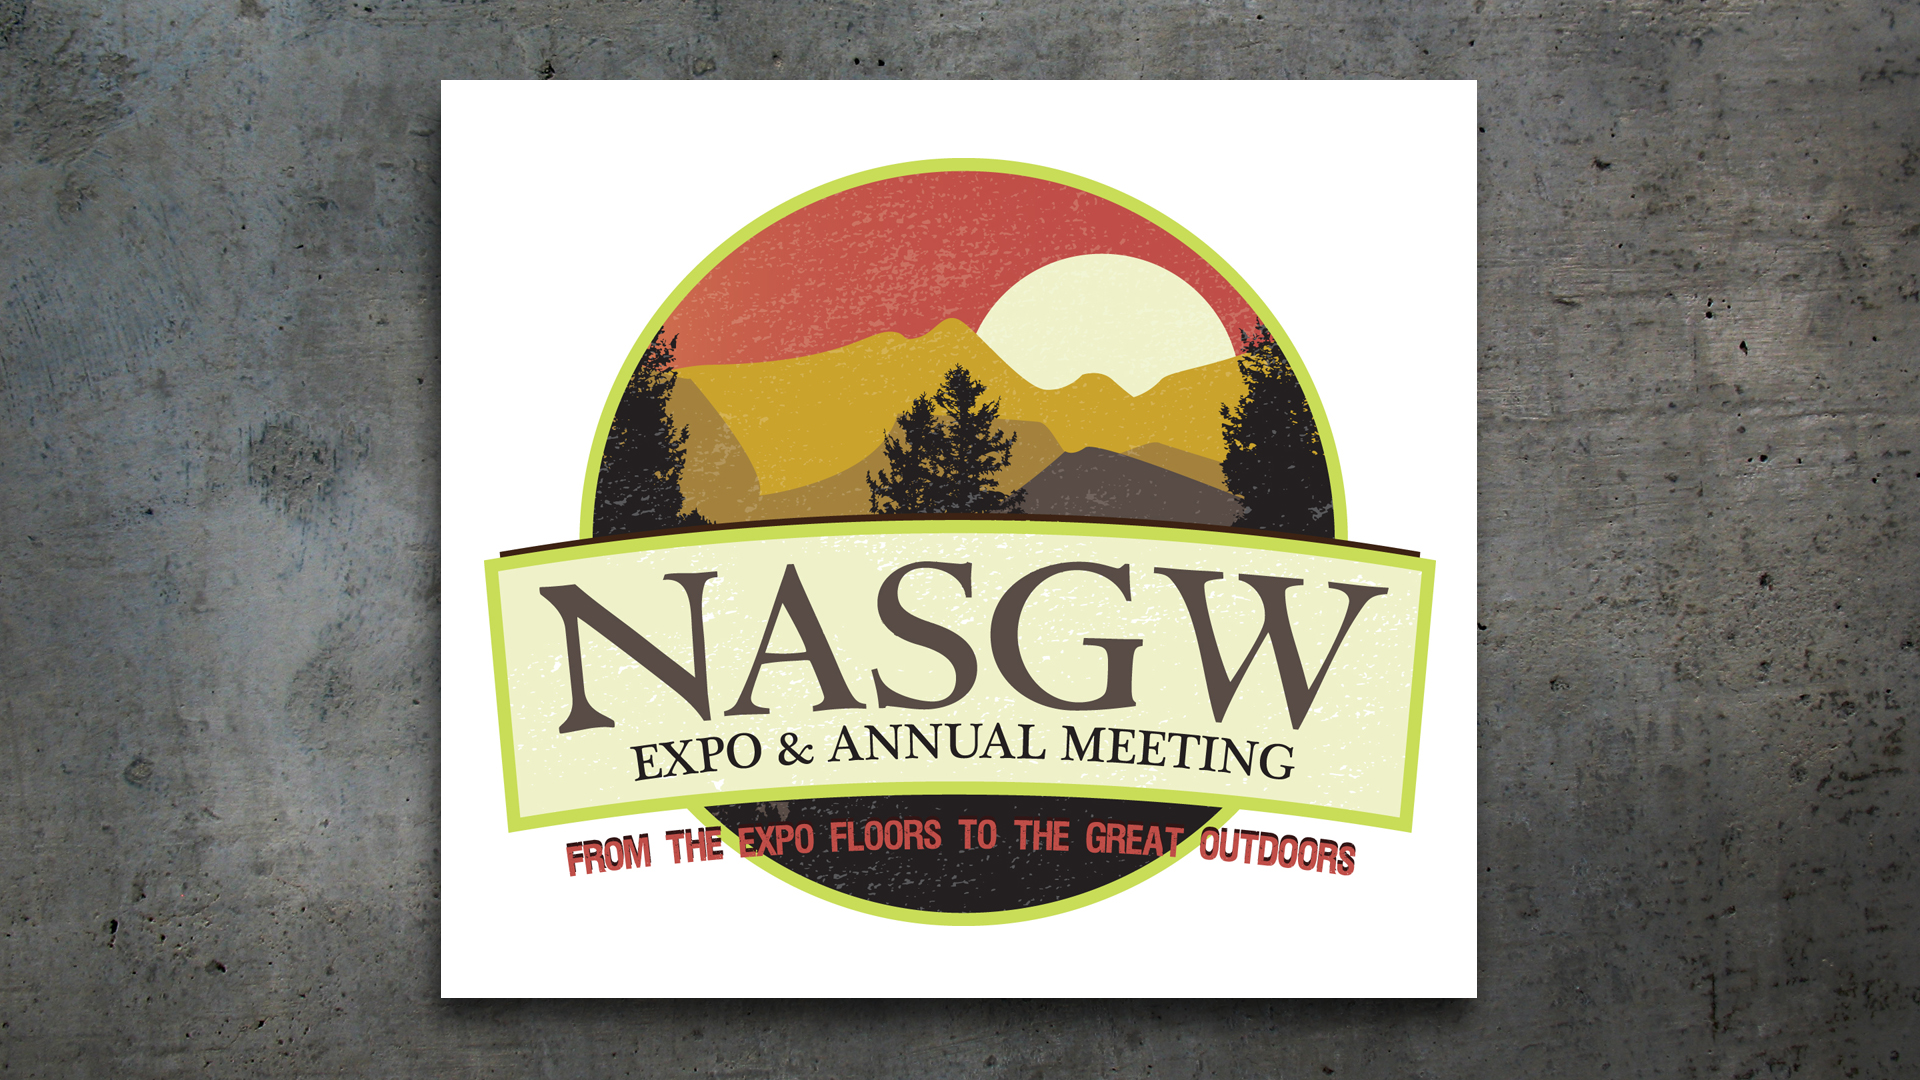 NASGW Expo & Annual Meeting Logo Design